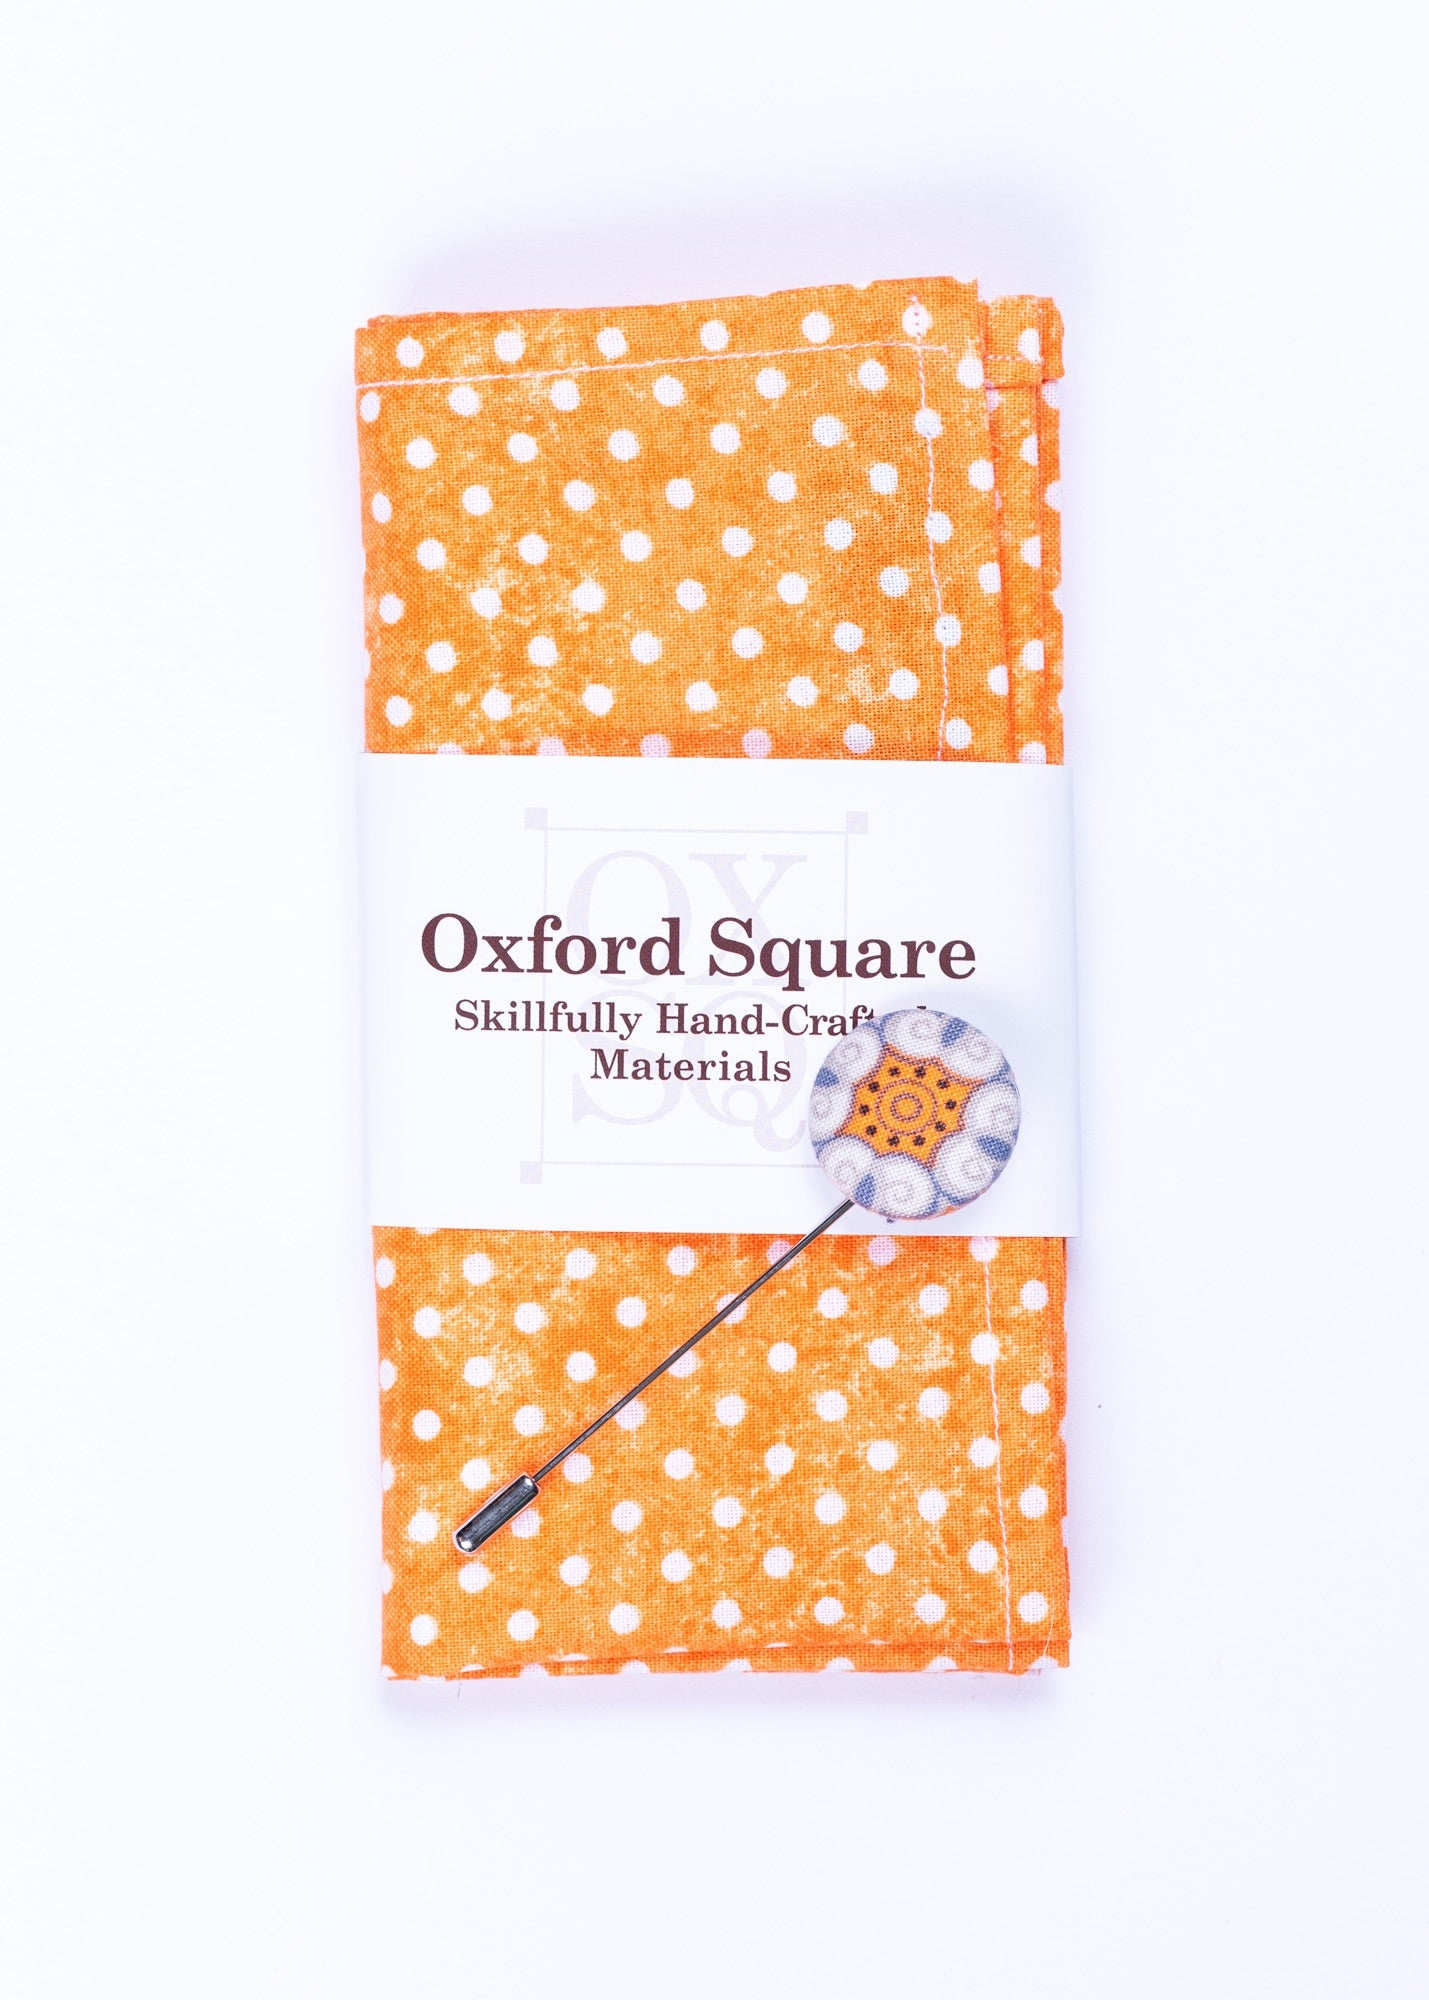 orange polka dot pattern pocket square and lapel pin pack - Oxford Square